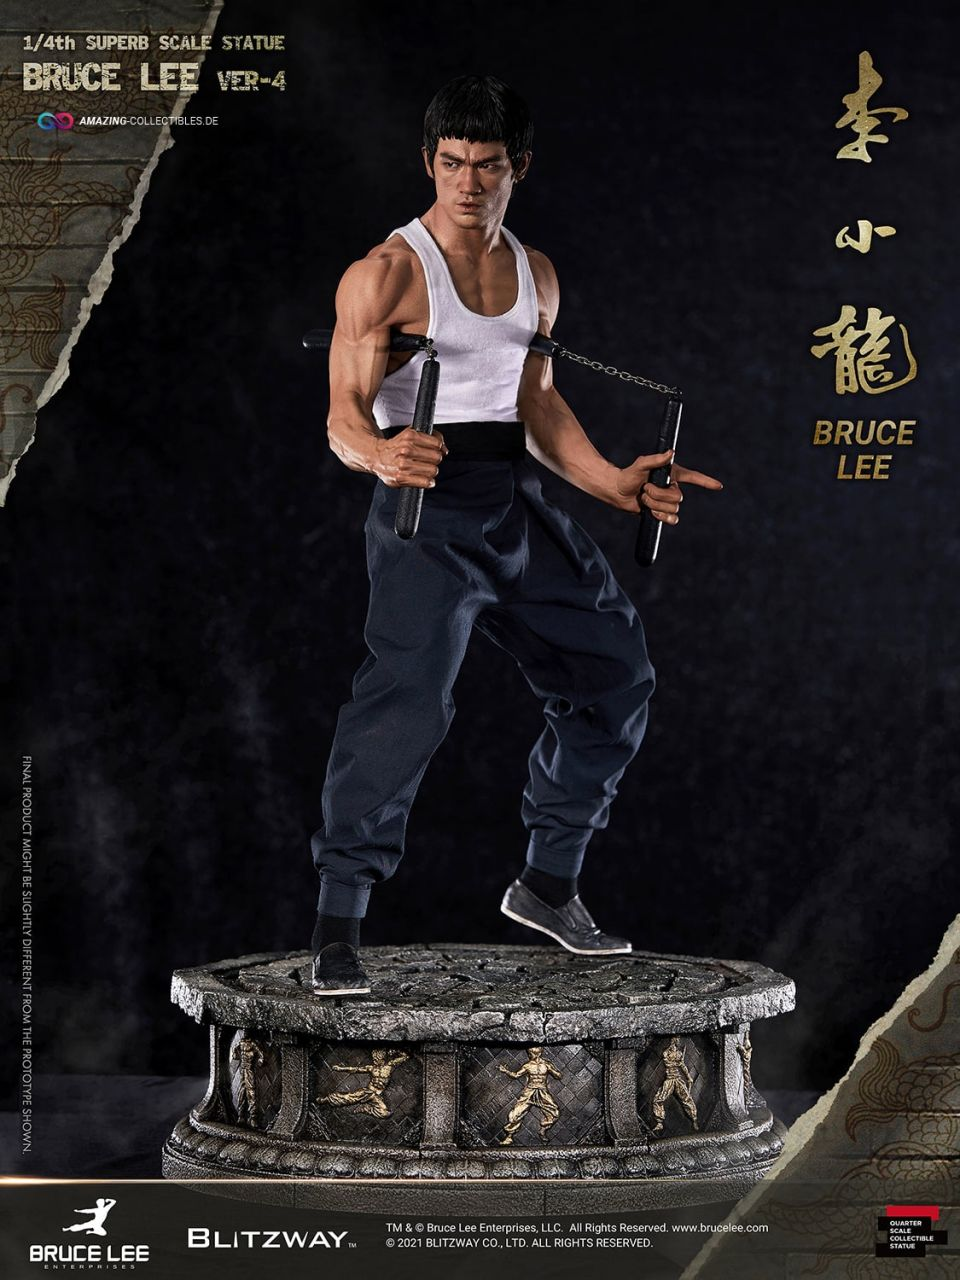 Blitzway - Bruce Lee - Tribute Statue Version 4 - Hybrid Statue Superb Scale